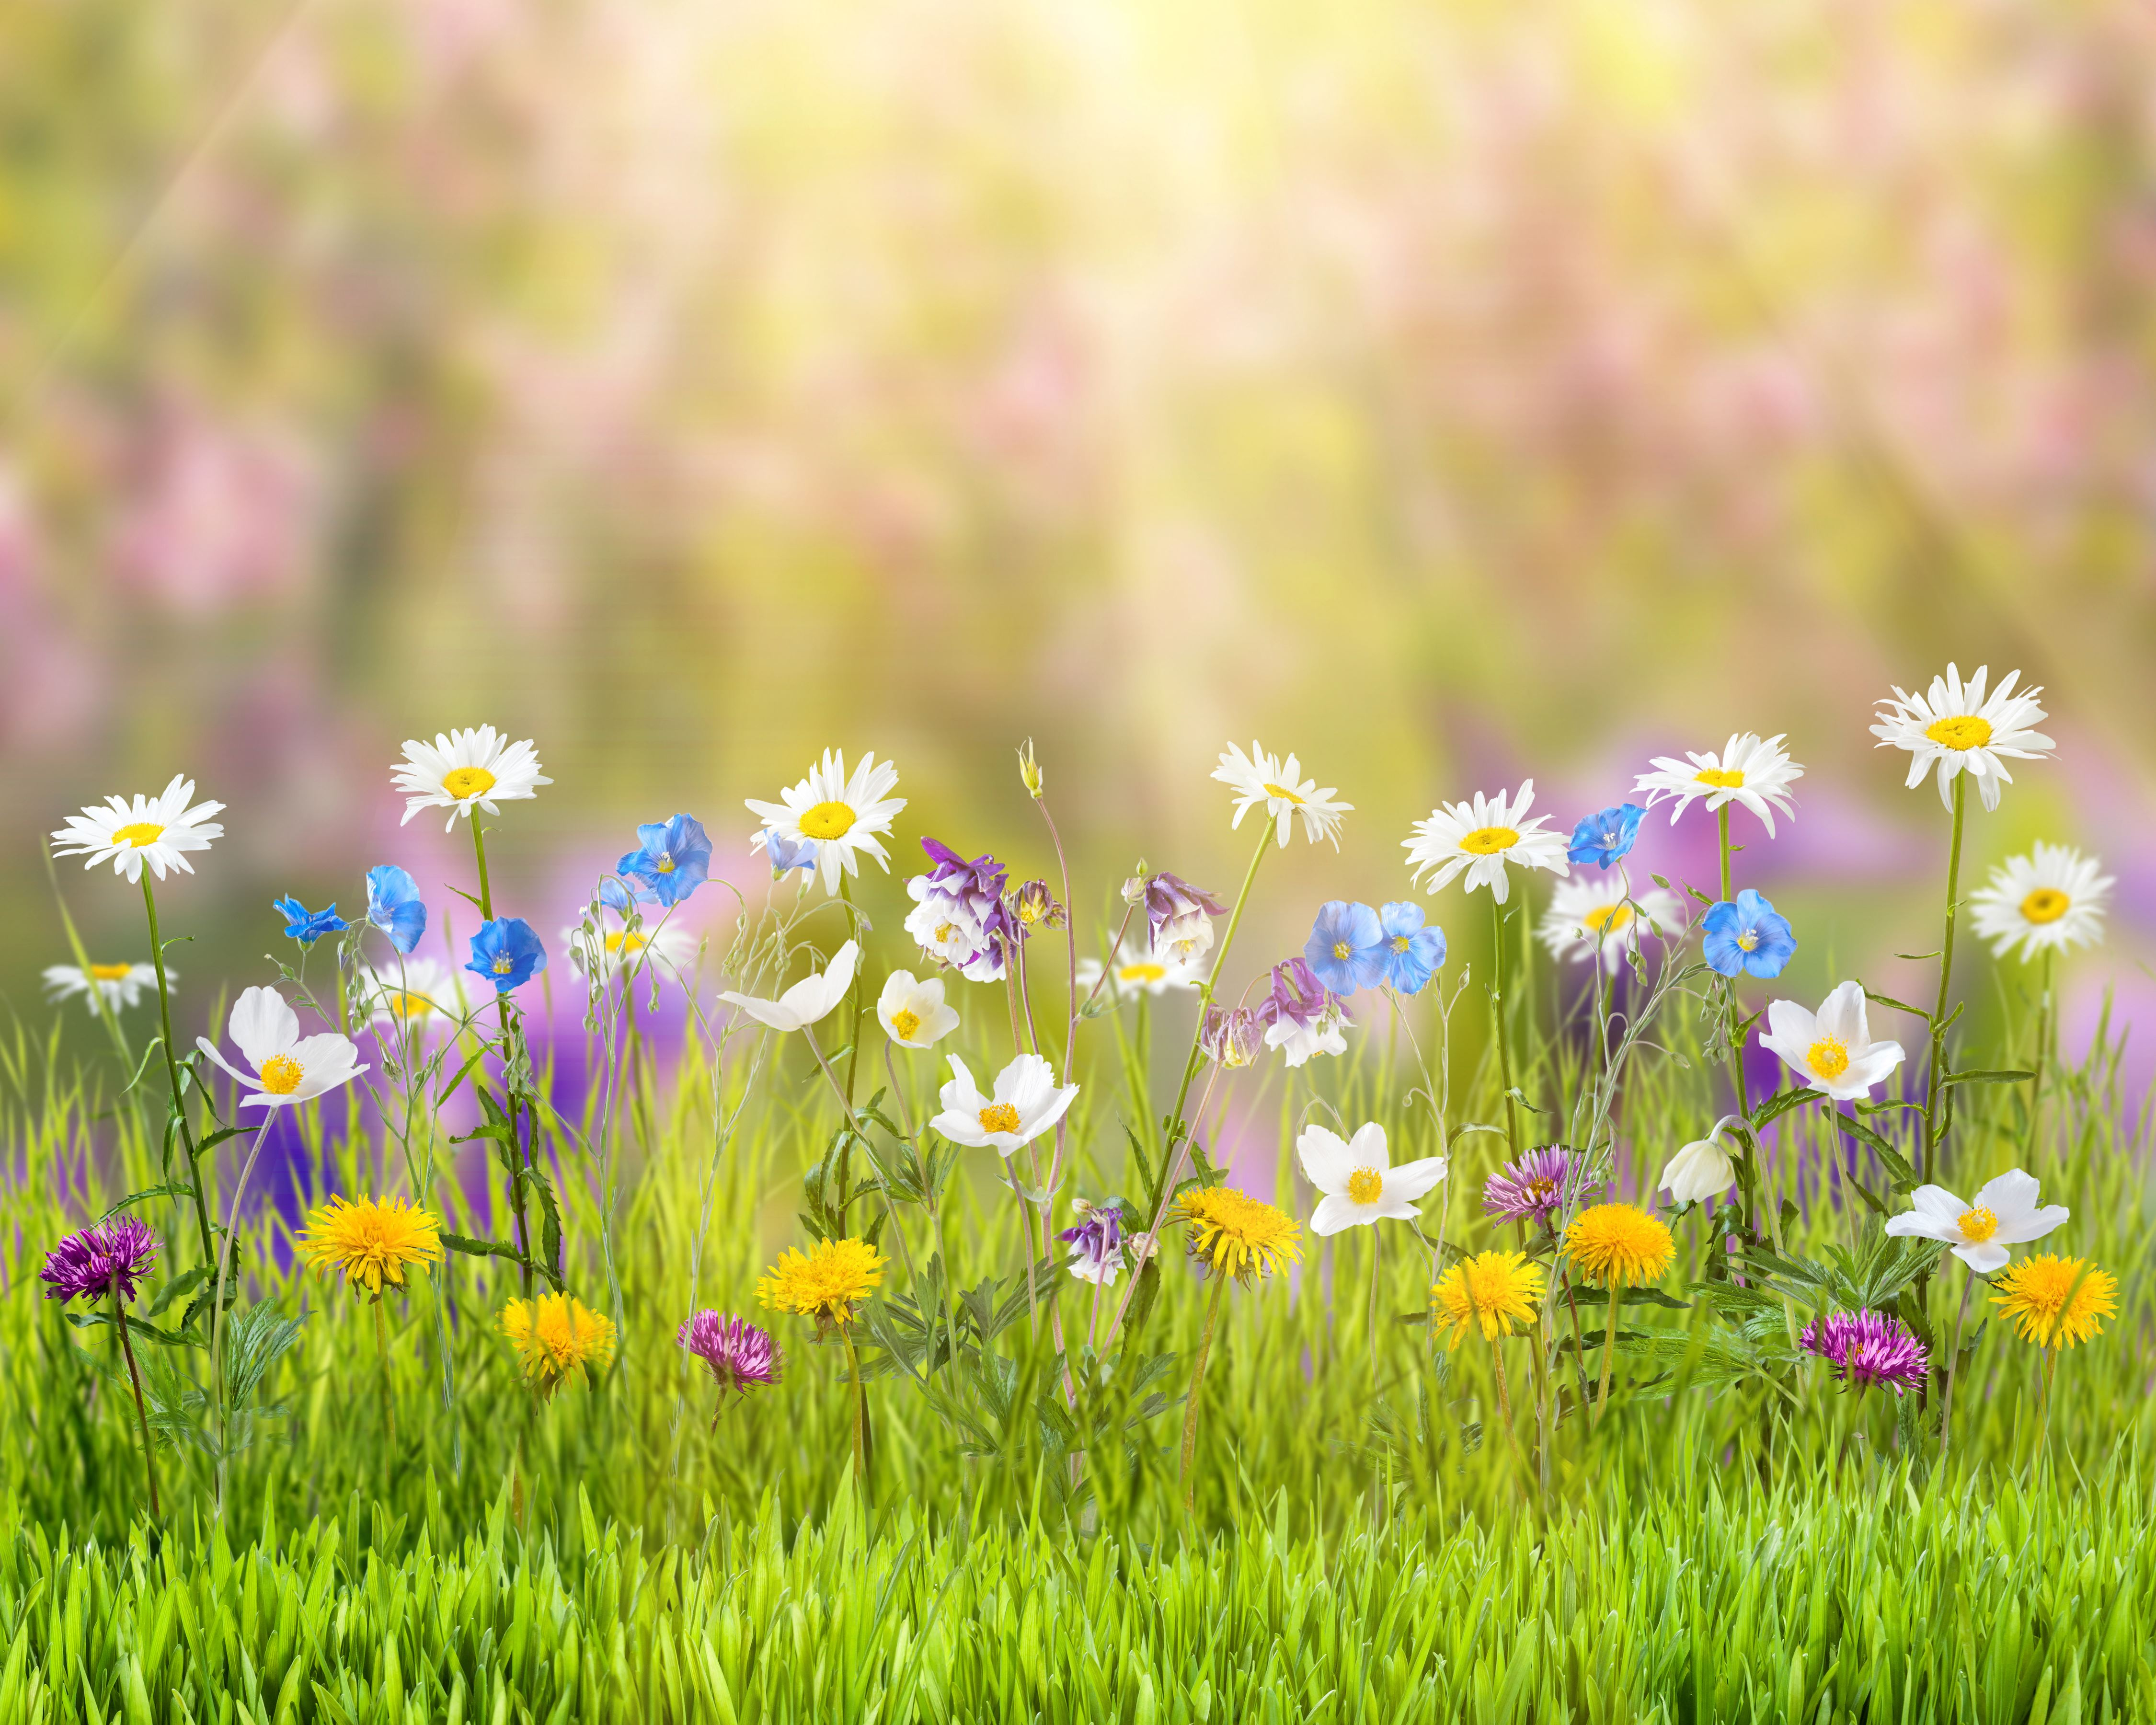 Spring 4k Wallpapers Hd 50736 Wallpaper: Spring, HD Flowers, 4k Wallpapers, Images, Backgrounds